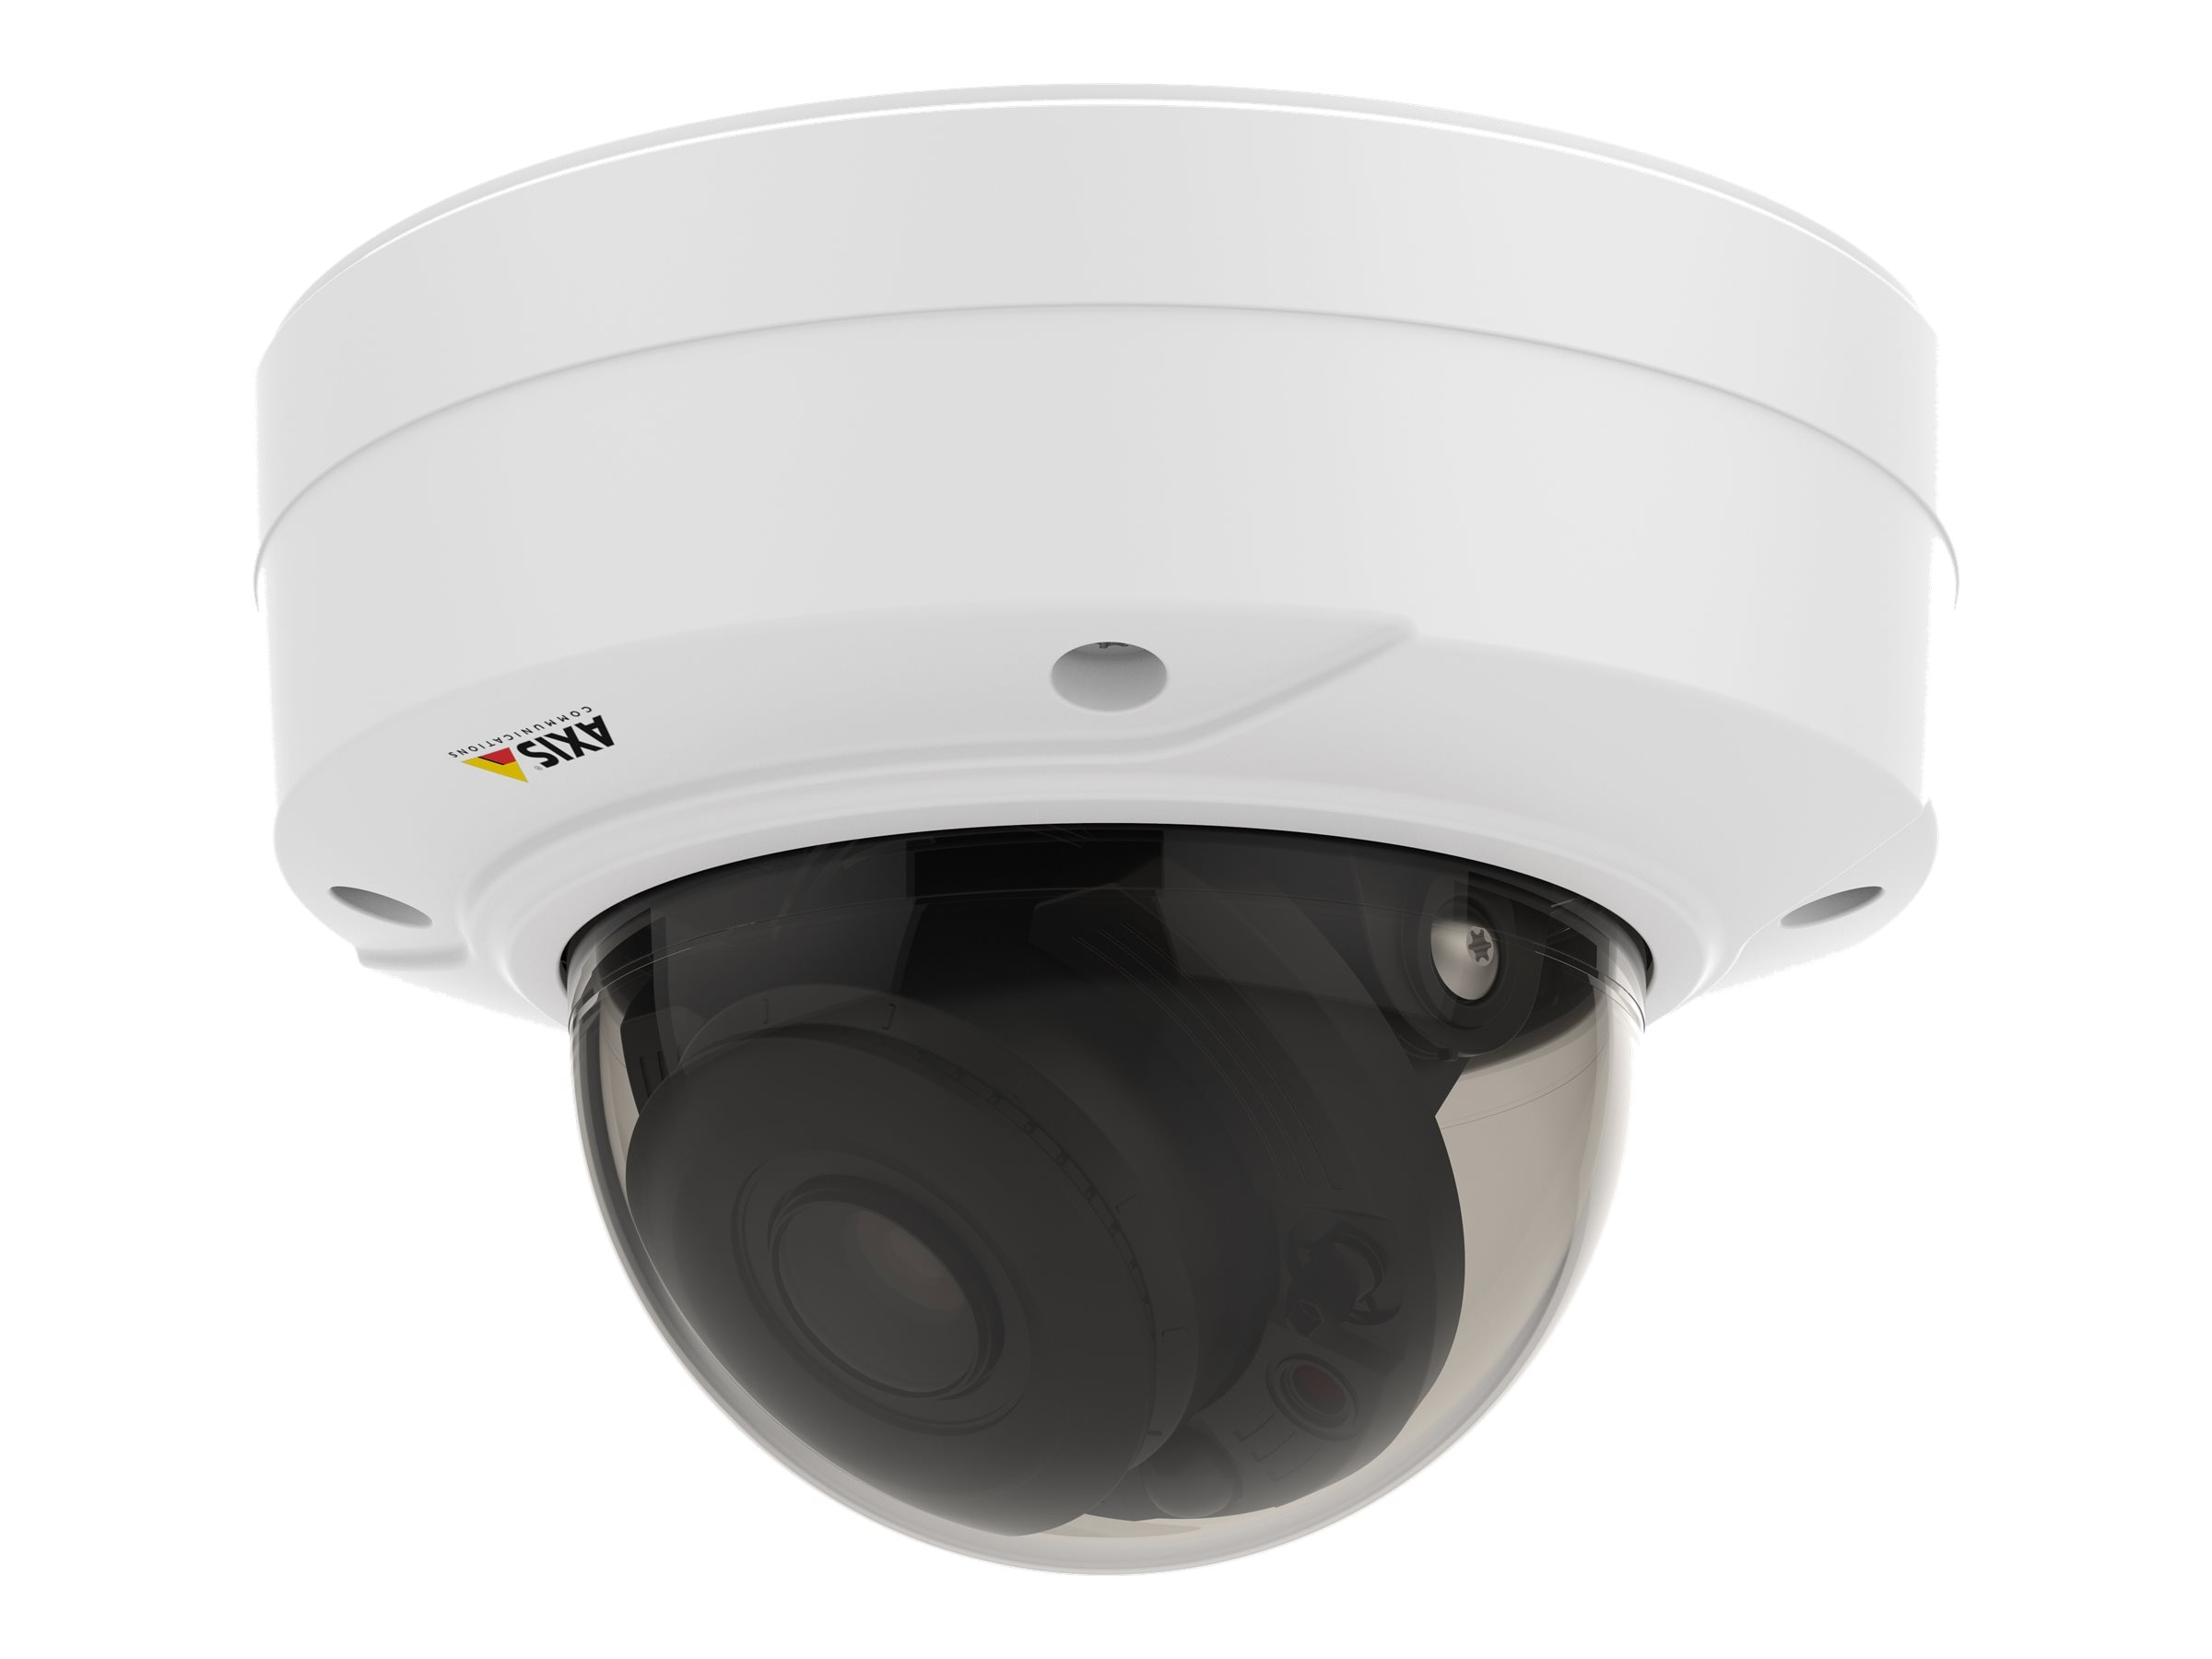 Axis P3224-LV 720p Day Night Fixed Dome Camera